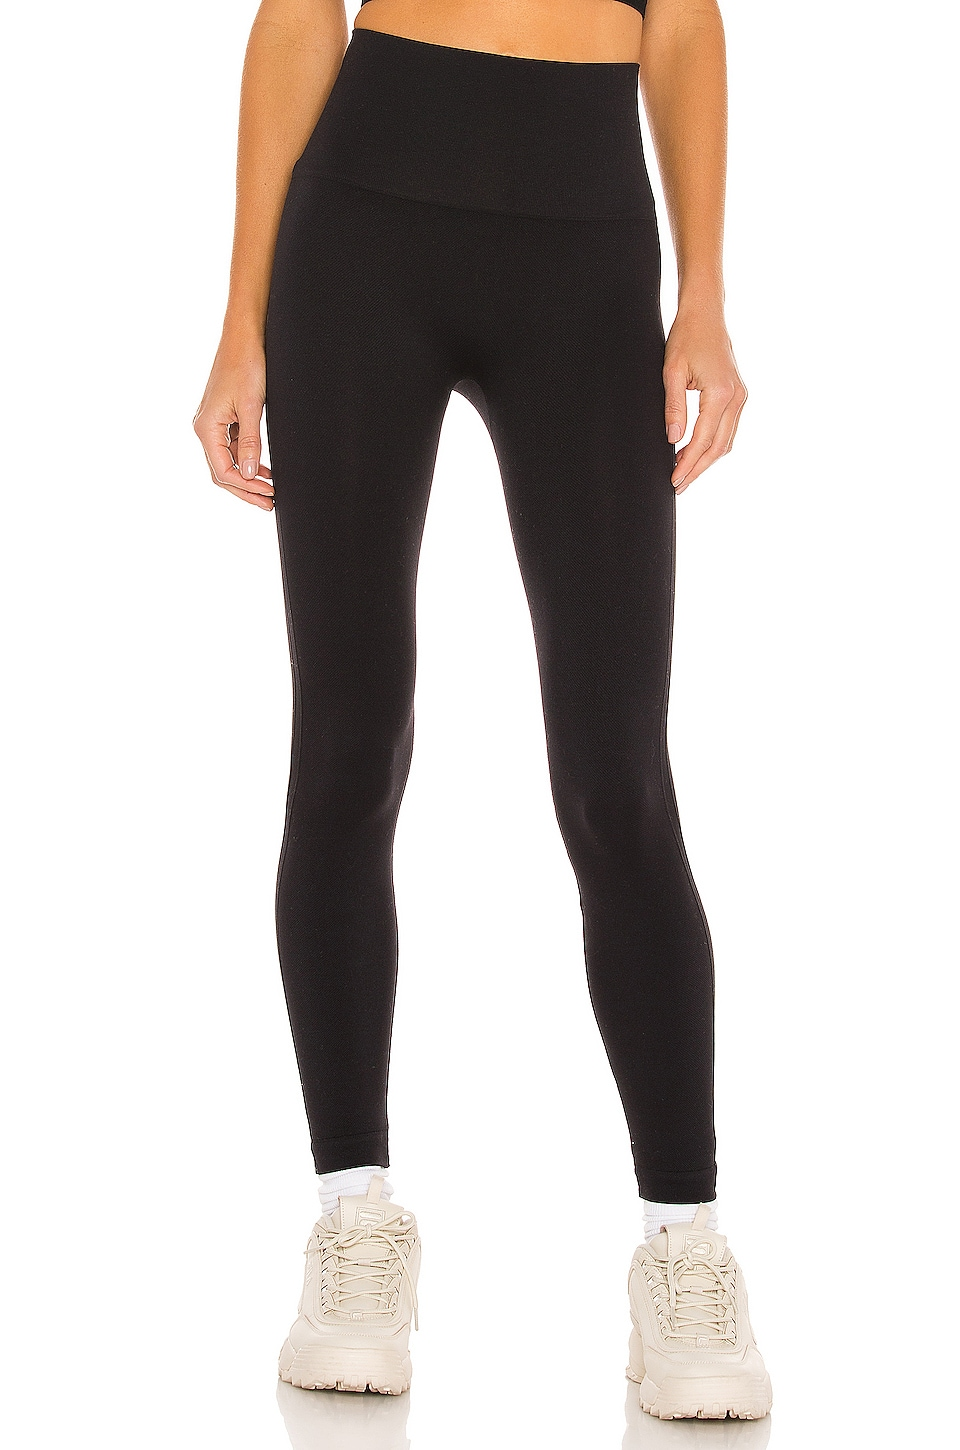 Look At Me Now Legging             SPANX                                                                                                       CA$ 95.49 9